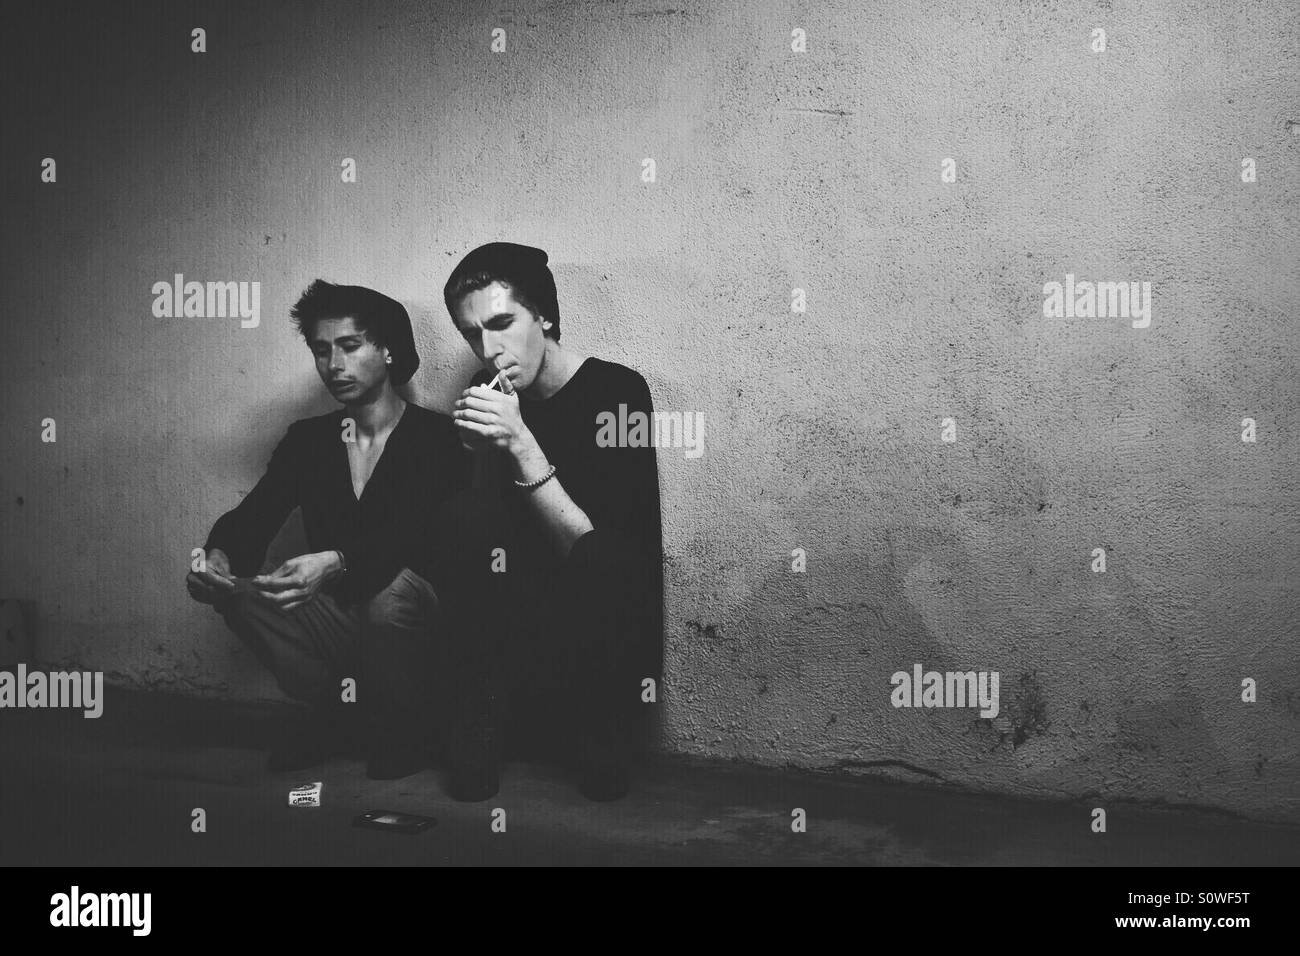 Two young men in black sit against a brick wall. Stock Photo